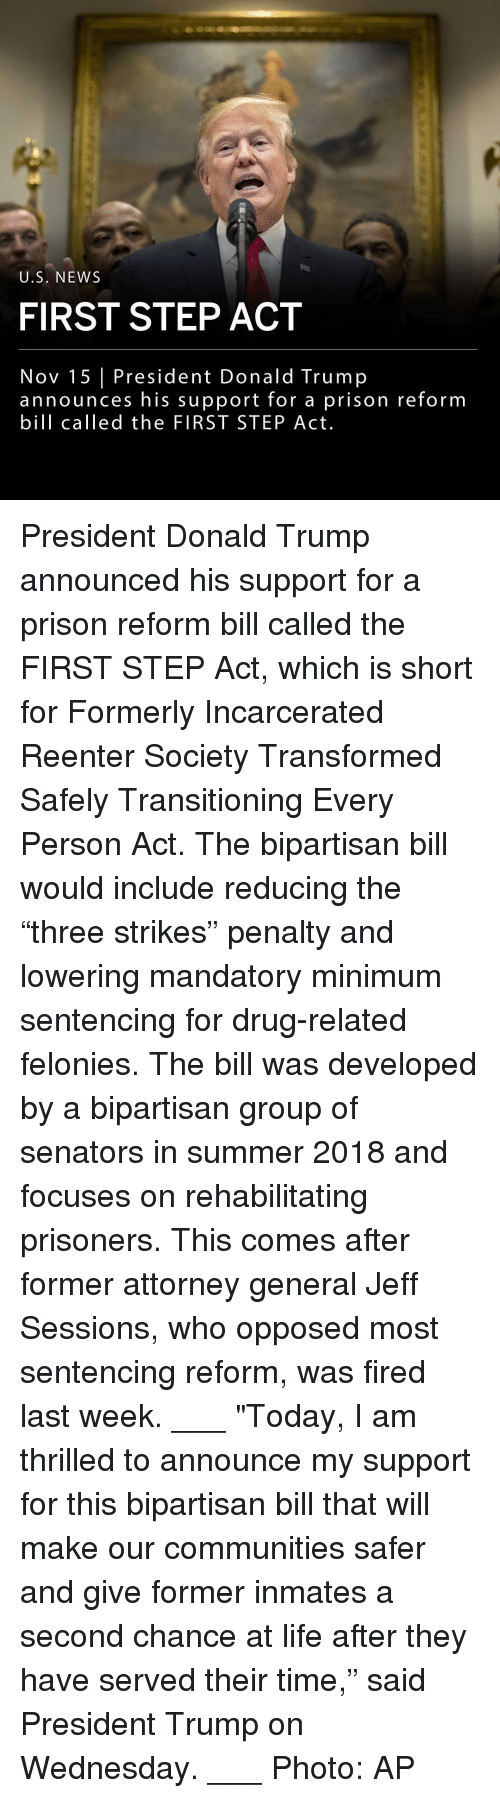 """attorney general: U.S. NEWS  FIRST STEP ACT  Nov 15 President Donald Trump  announces his support for a prison reform  bill called the FIRST STEP Act. President Donald Trump announced his support for a prison reform bill called the FIRST STEP Act, which is short for Formerly Incarcerated Reenter Society Transformed Safely Transitioning Every Person Act. The bipartisan bill would include reducing the """"three strikes"""" penalty and lowering mandatory minimum sentencing for drug-related felonies. The bill was developed by a bipartisan group of senators in summer 2018 and focuses on rehabilitating prisoners. This comes after former attorney general Jeff Sessions, who opposed most sentencing reform, was fired last week. ___ """"Today, I am thrilled to announce my support for this bipartisan bill that will make our communities safer and give former inmates a second chance at life after they have served their time,"""" said President Trump on Wednesday. ___ Photo: AP"""